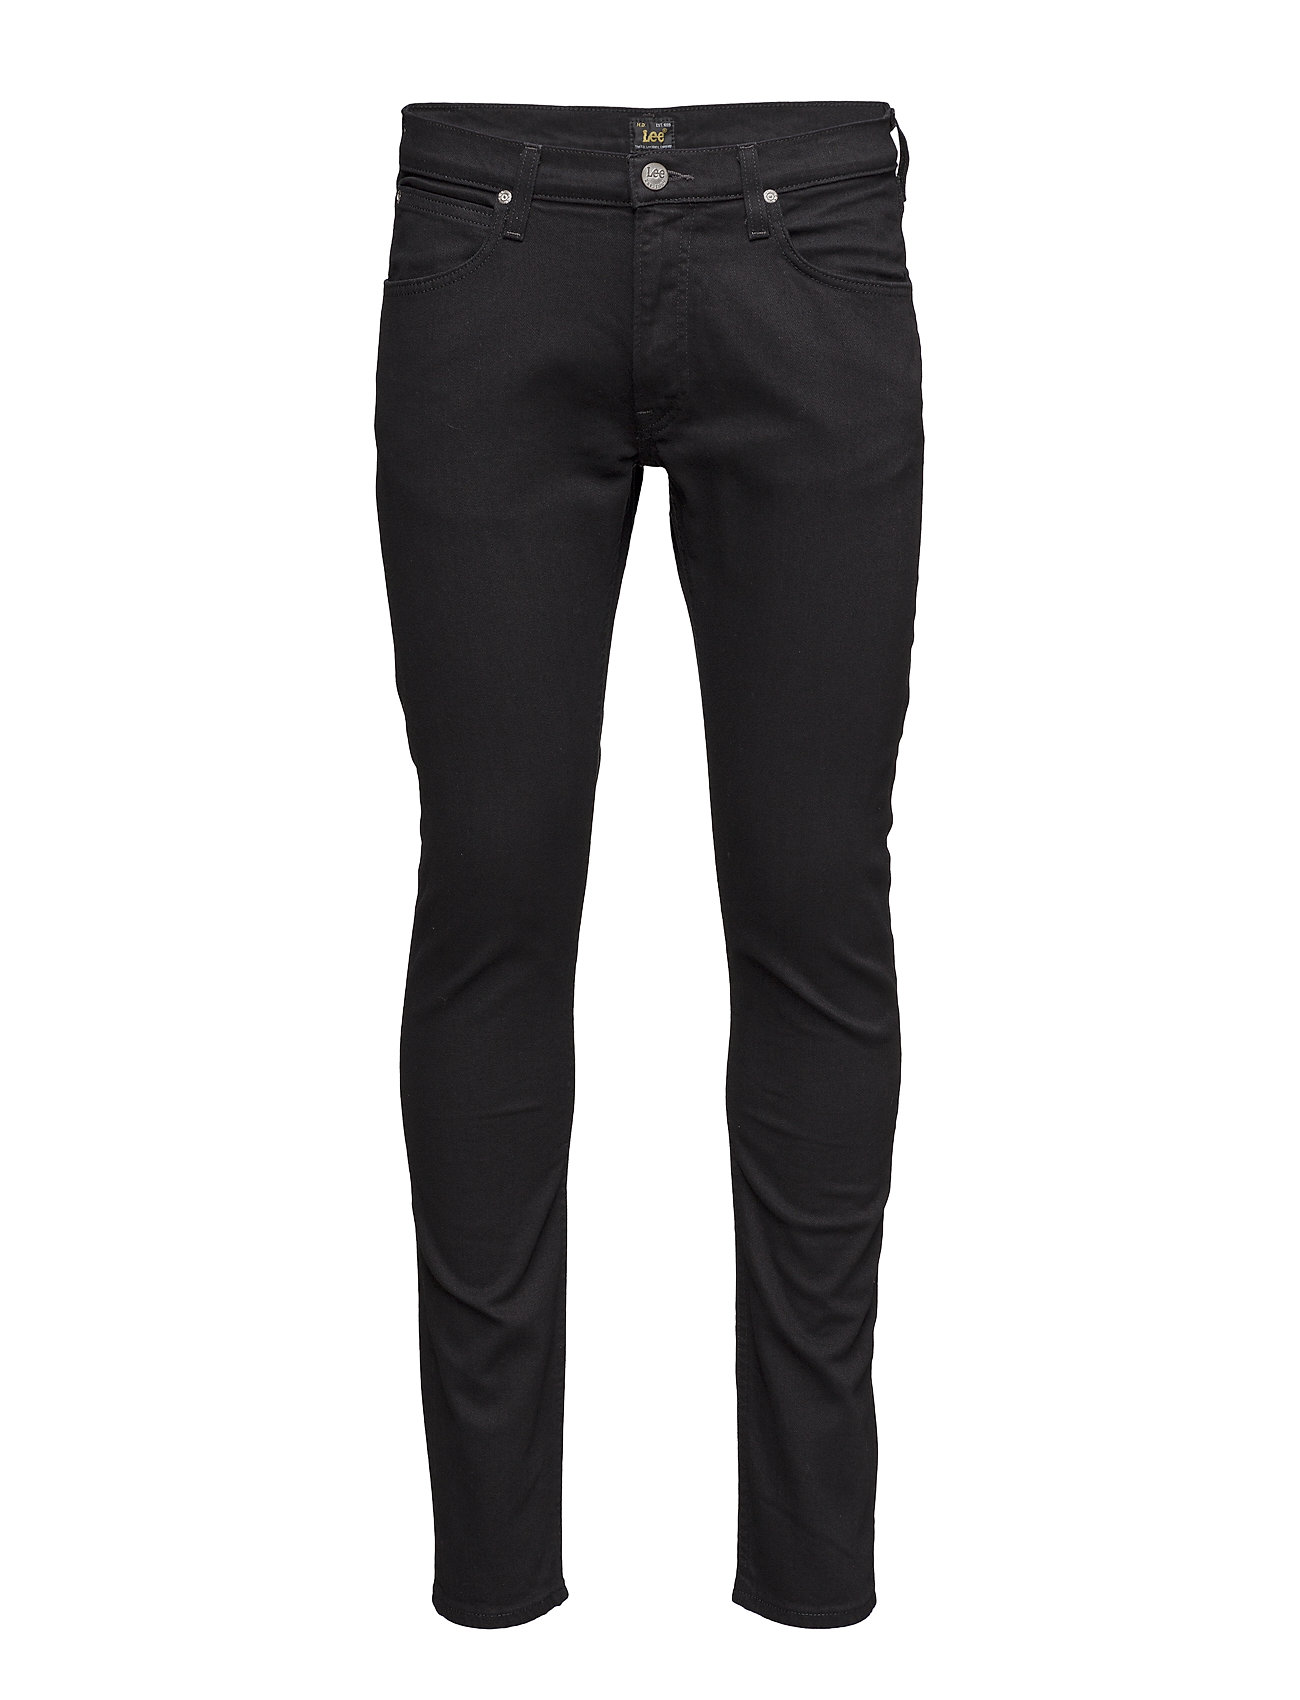 Lee Jeans LUKE - CLEAN BLACK